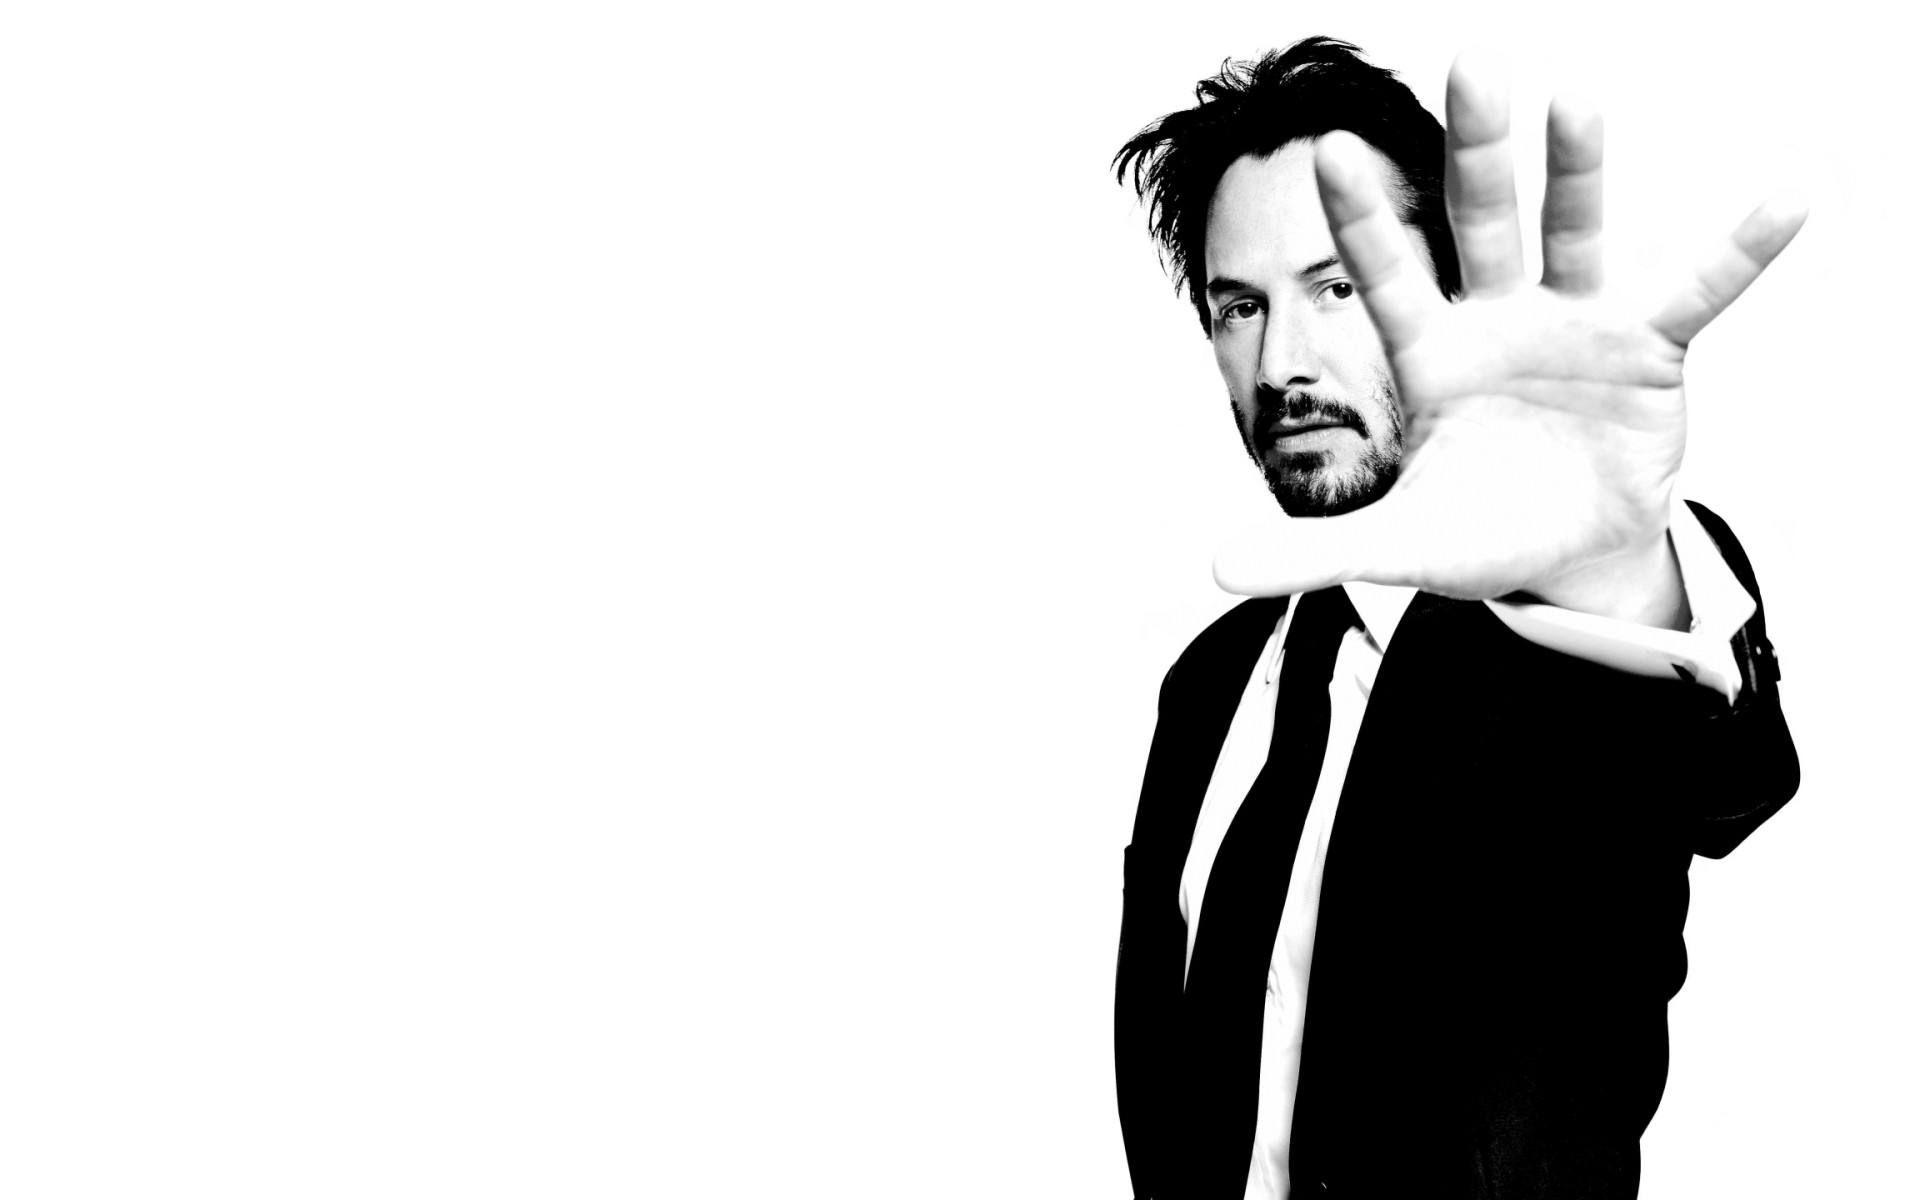 Res: 1920x1200, Wallpaper Keanu reeves, Man, Actor, Black white, Hand, White, Jacket HD,  Picture, Image